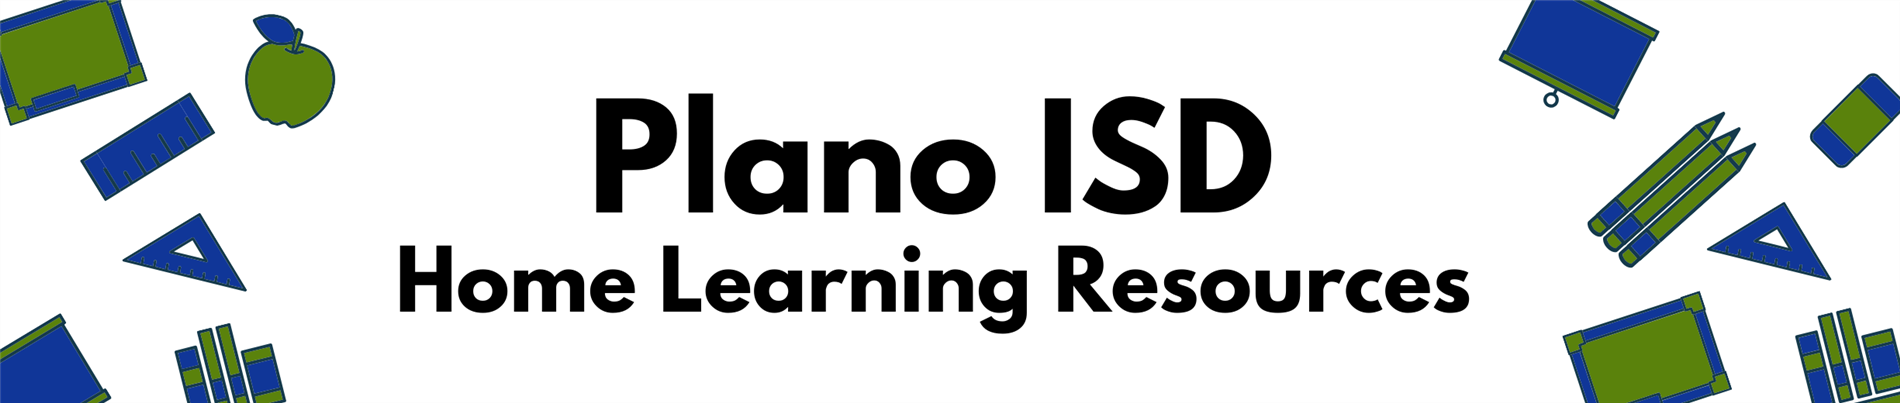 Plano ISD Home Learning Resources